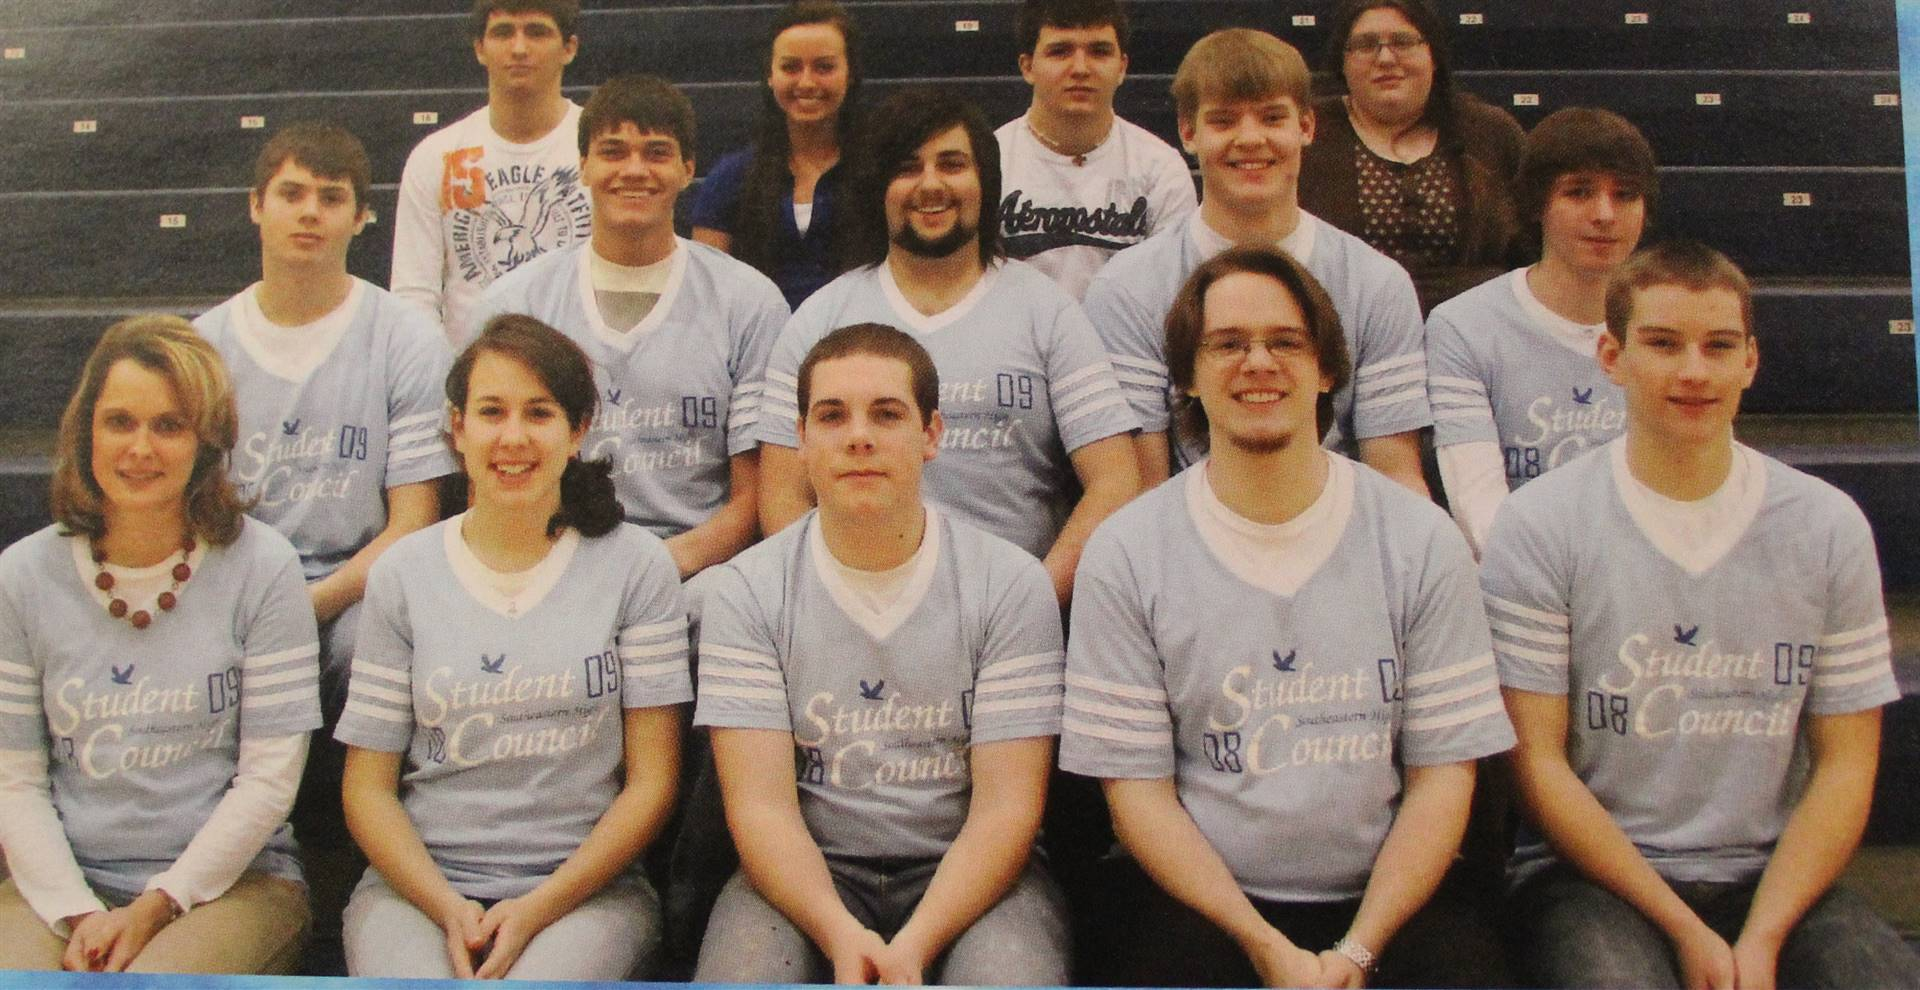 2009 Student council